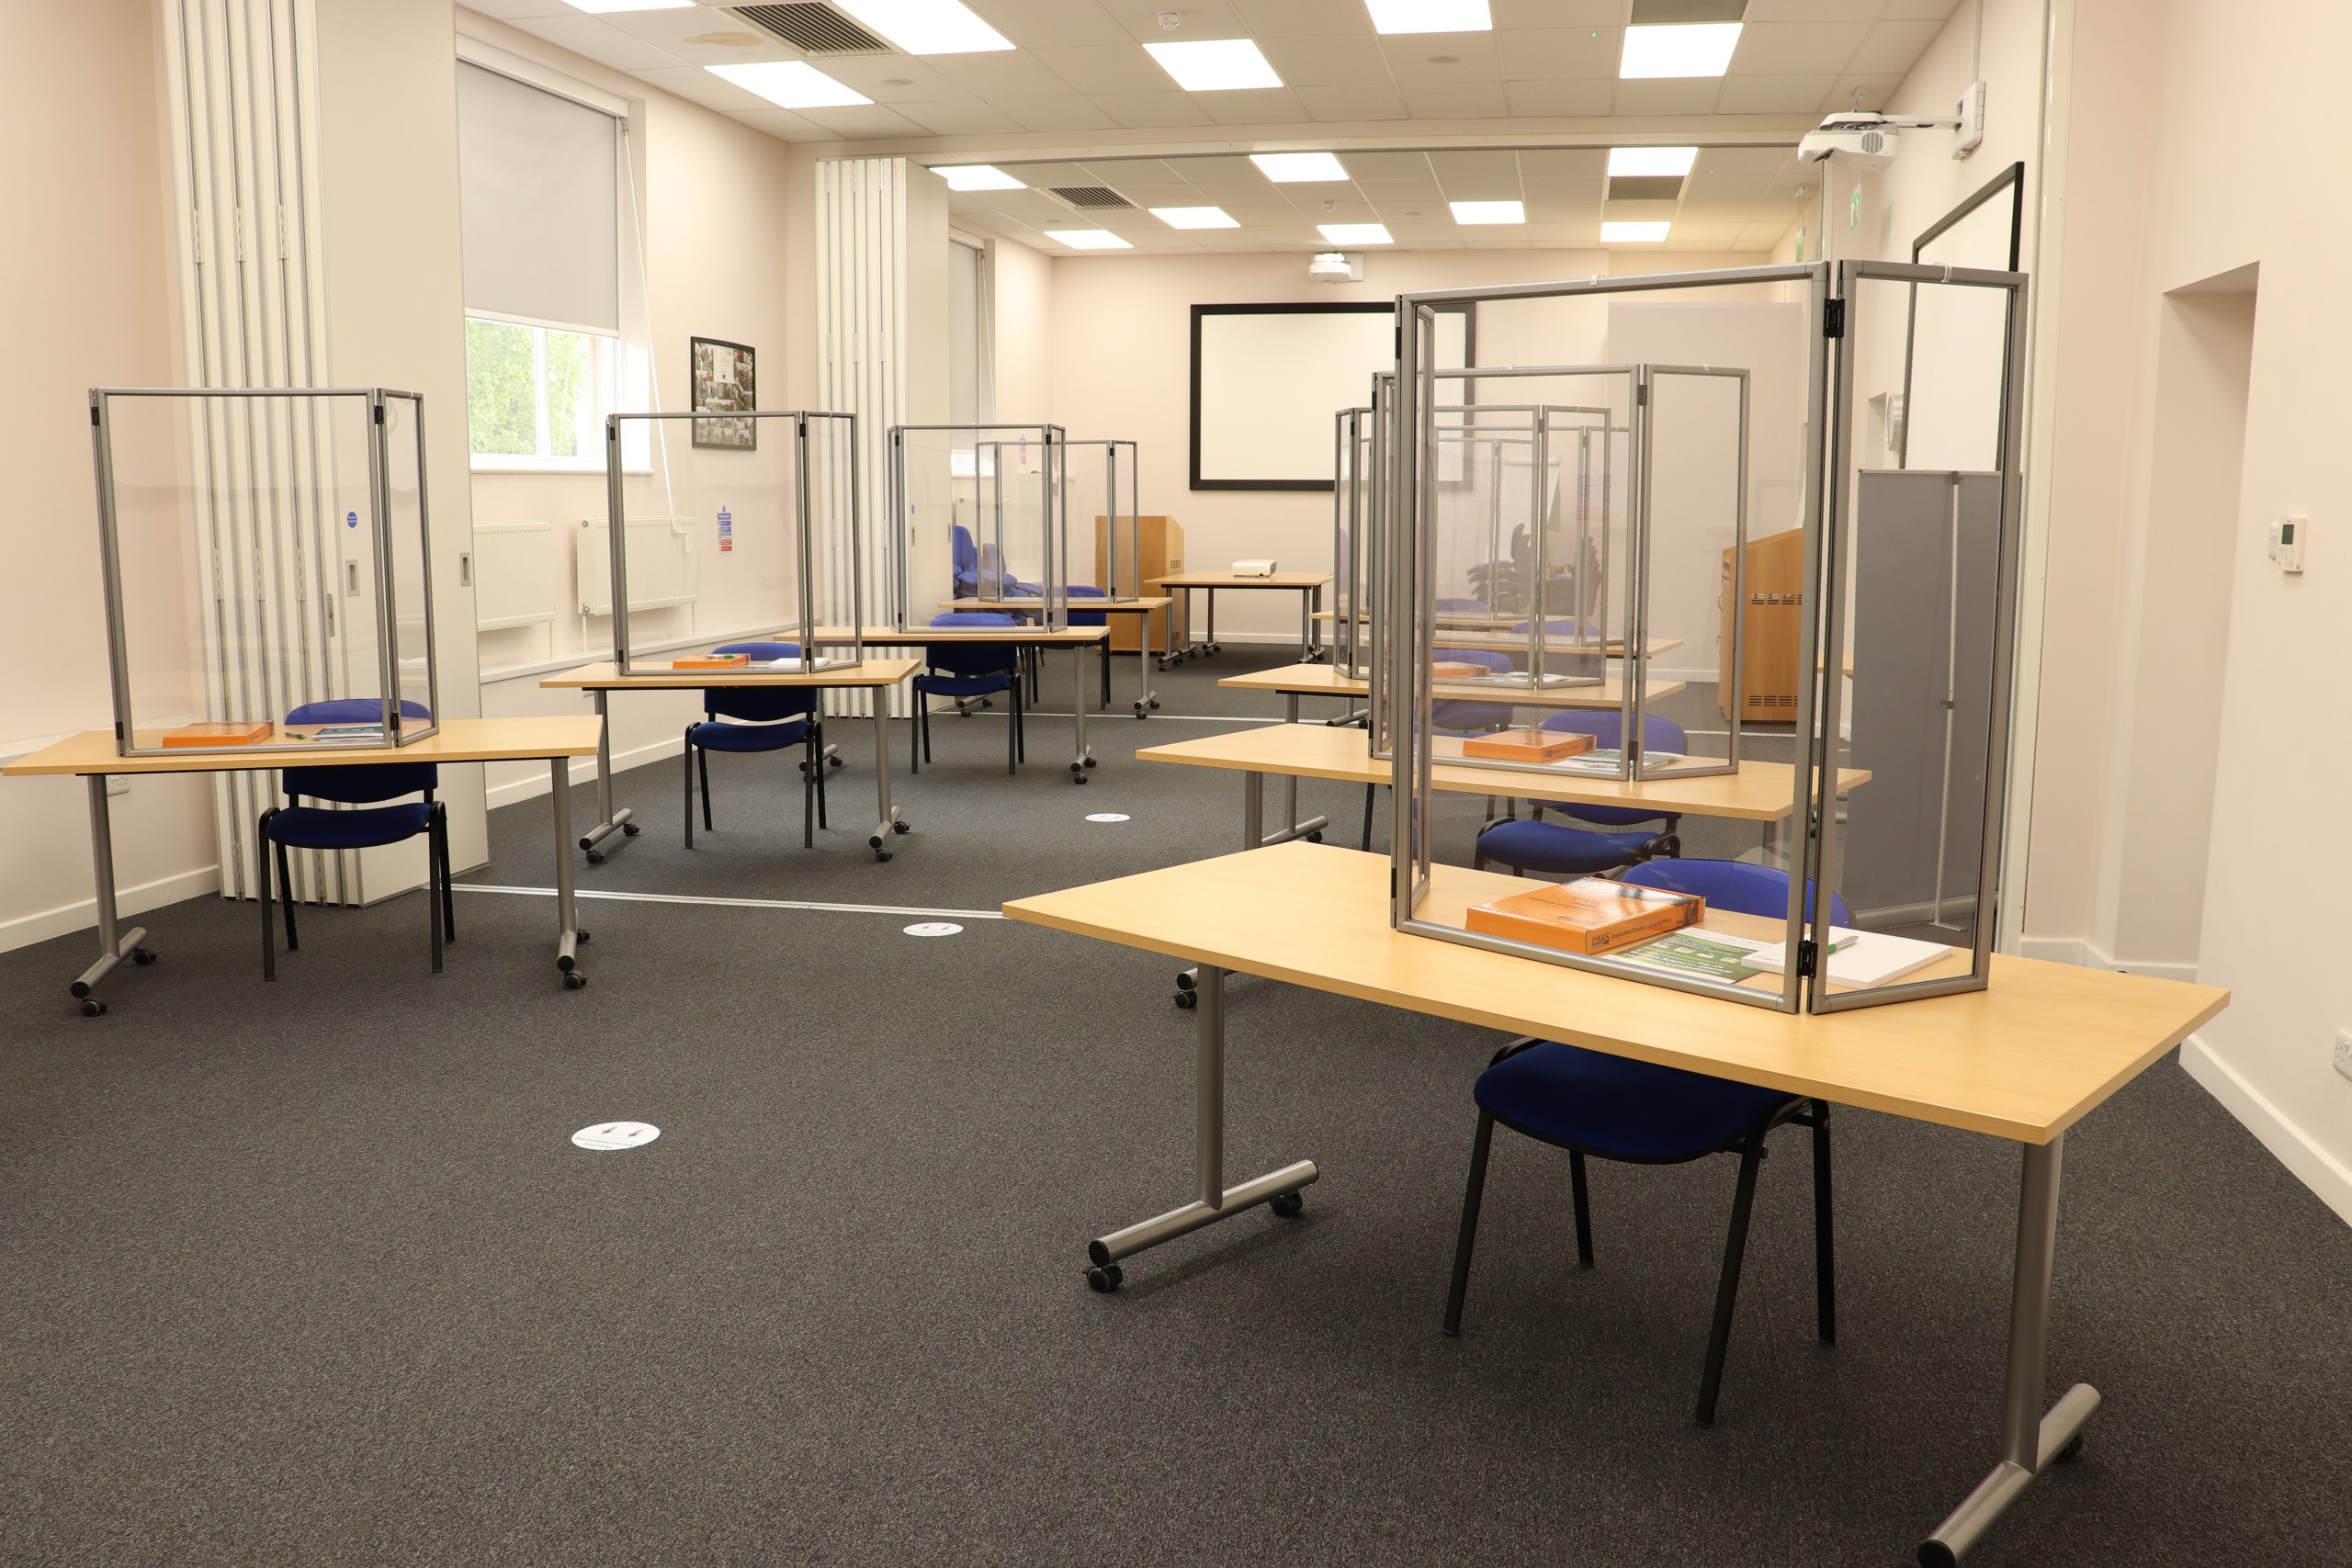 Socially Distanced Classroom Layout